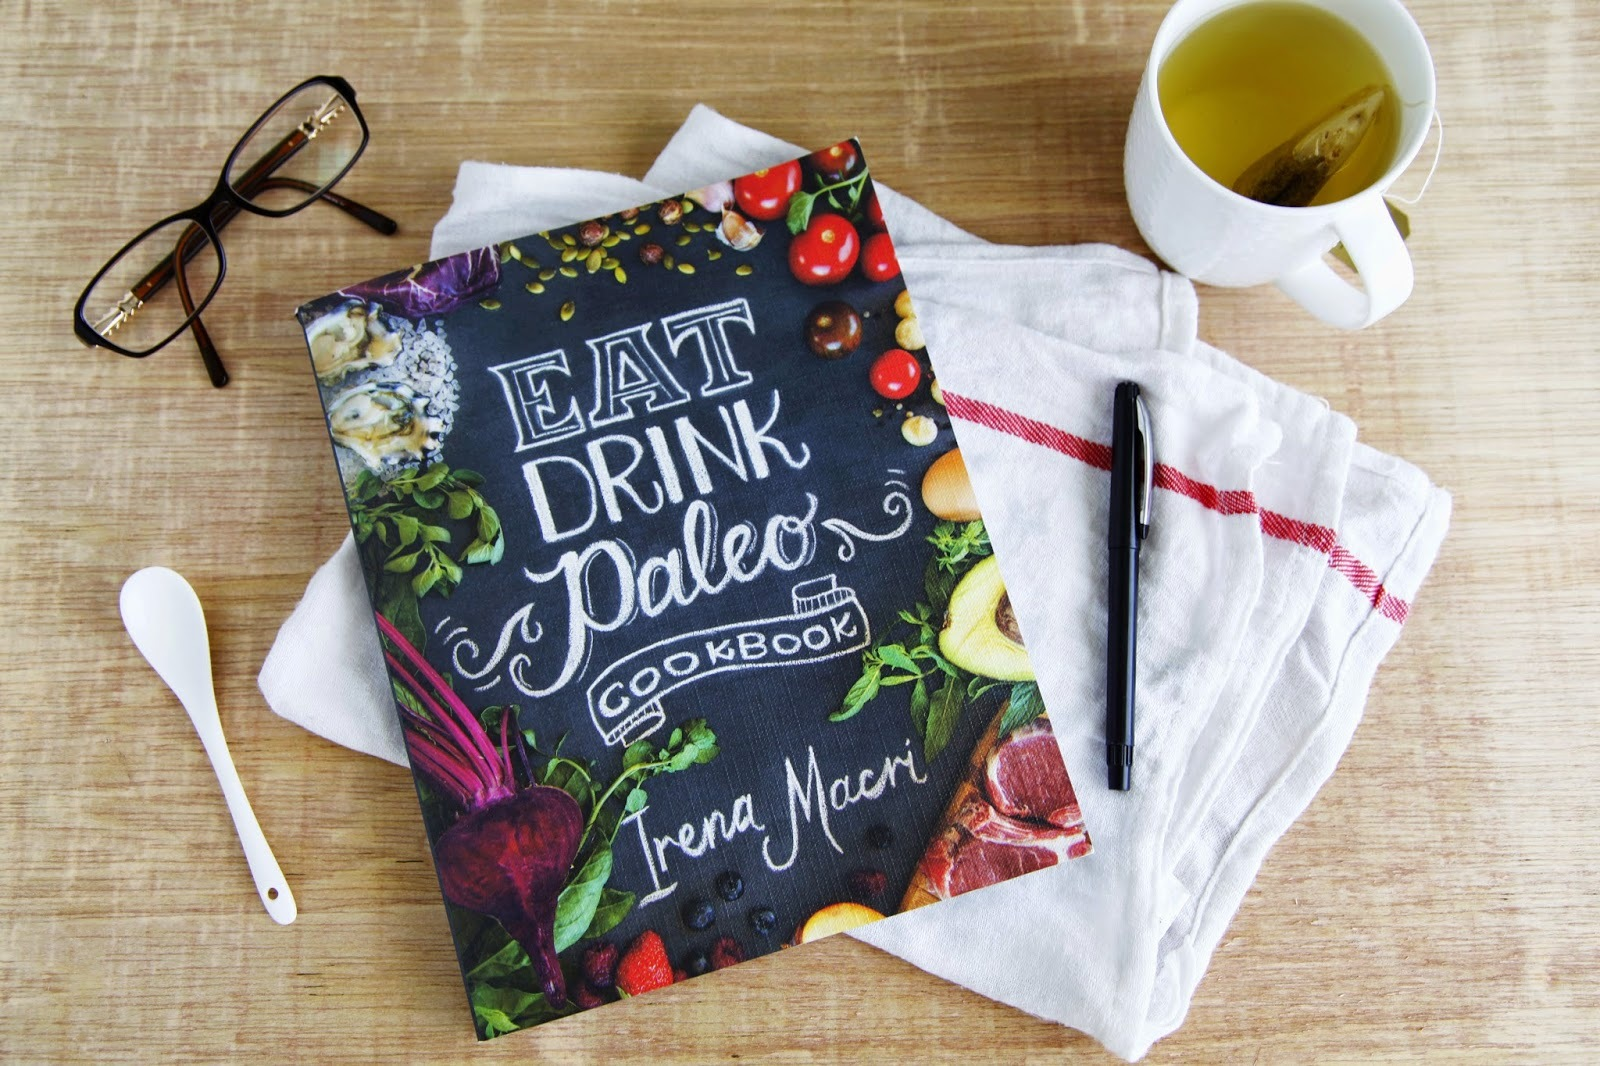 Eat Drink Paleo Cookbook & A Chat With Irena Macri